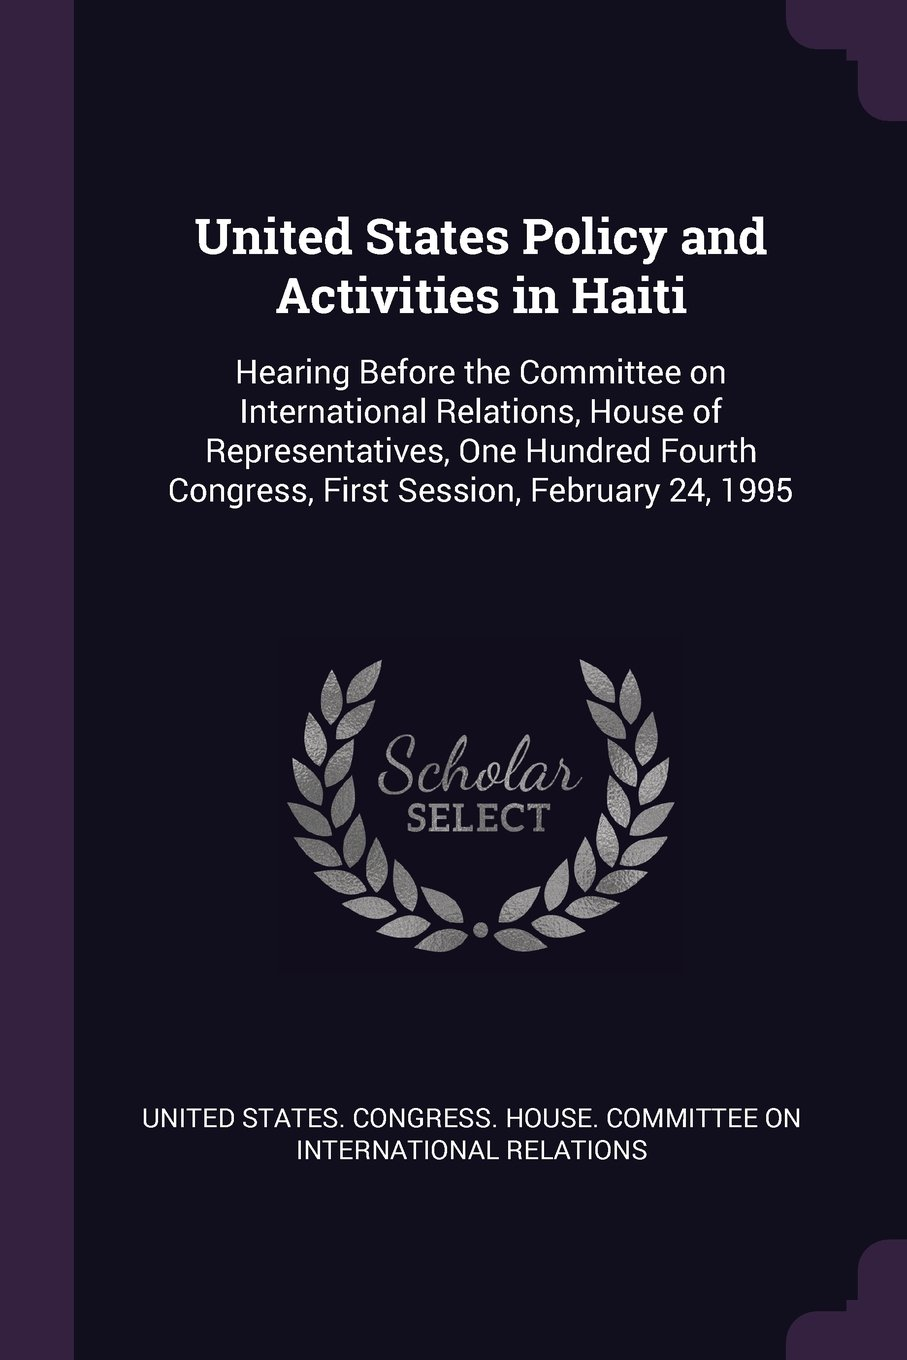 United States Policy and Activities in Haiti: Hearing Before the Committee on International Relations, House of Representatives, One Hundred Fourth Congress, First Session, February 24, 1995